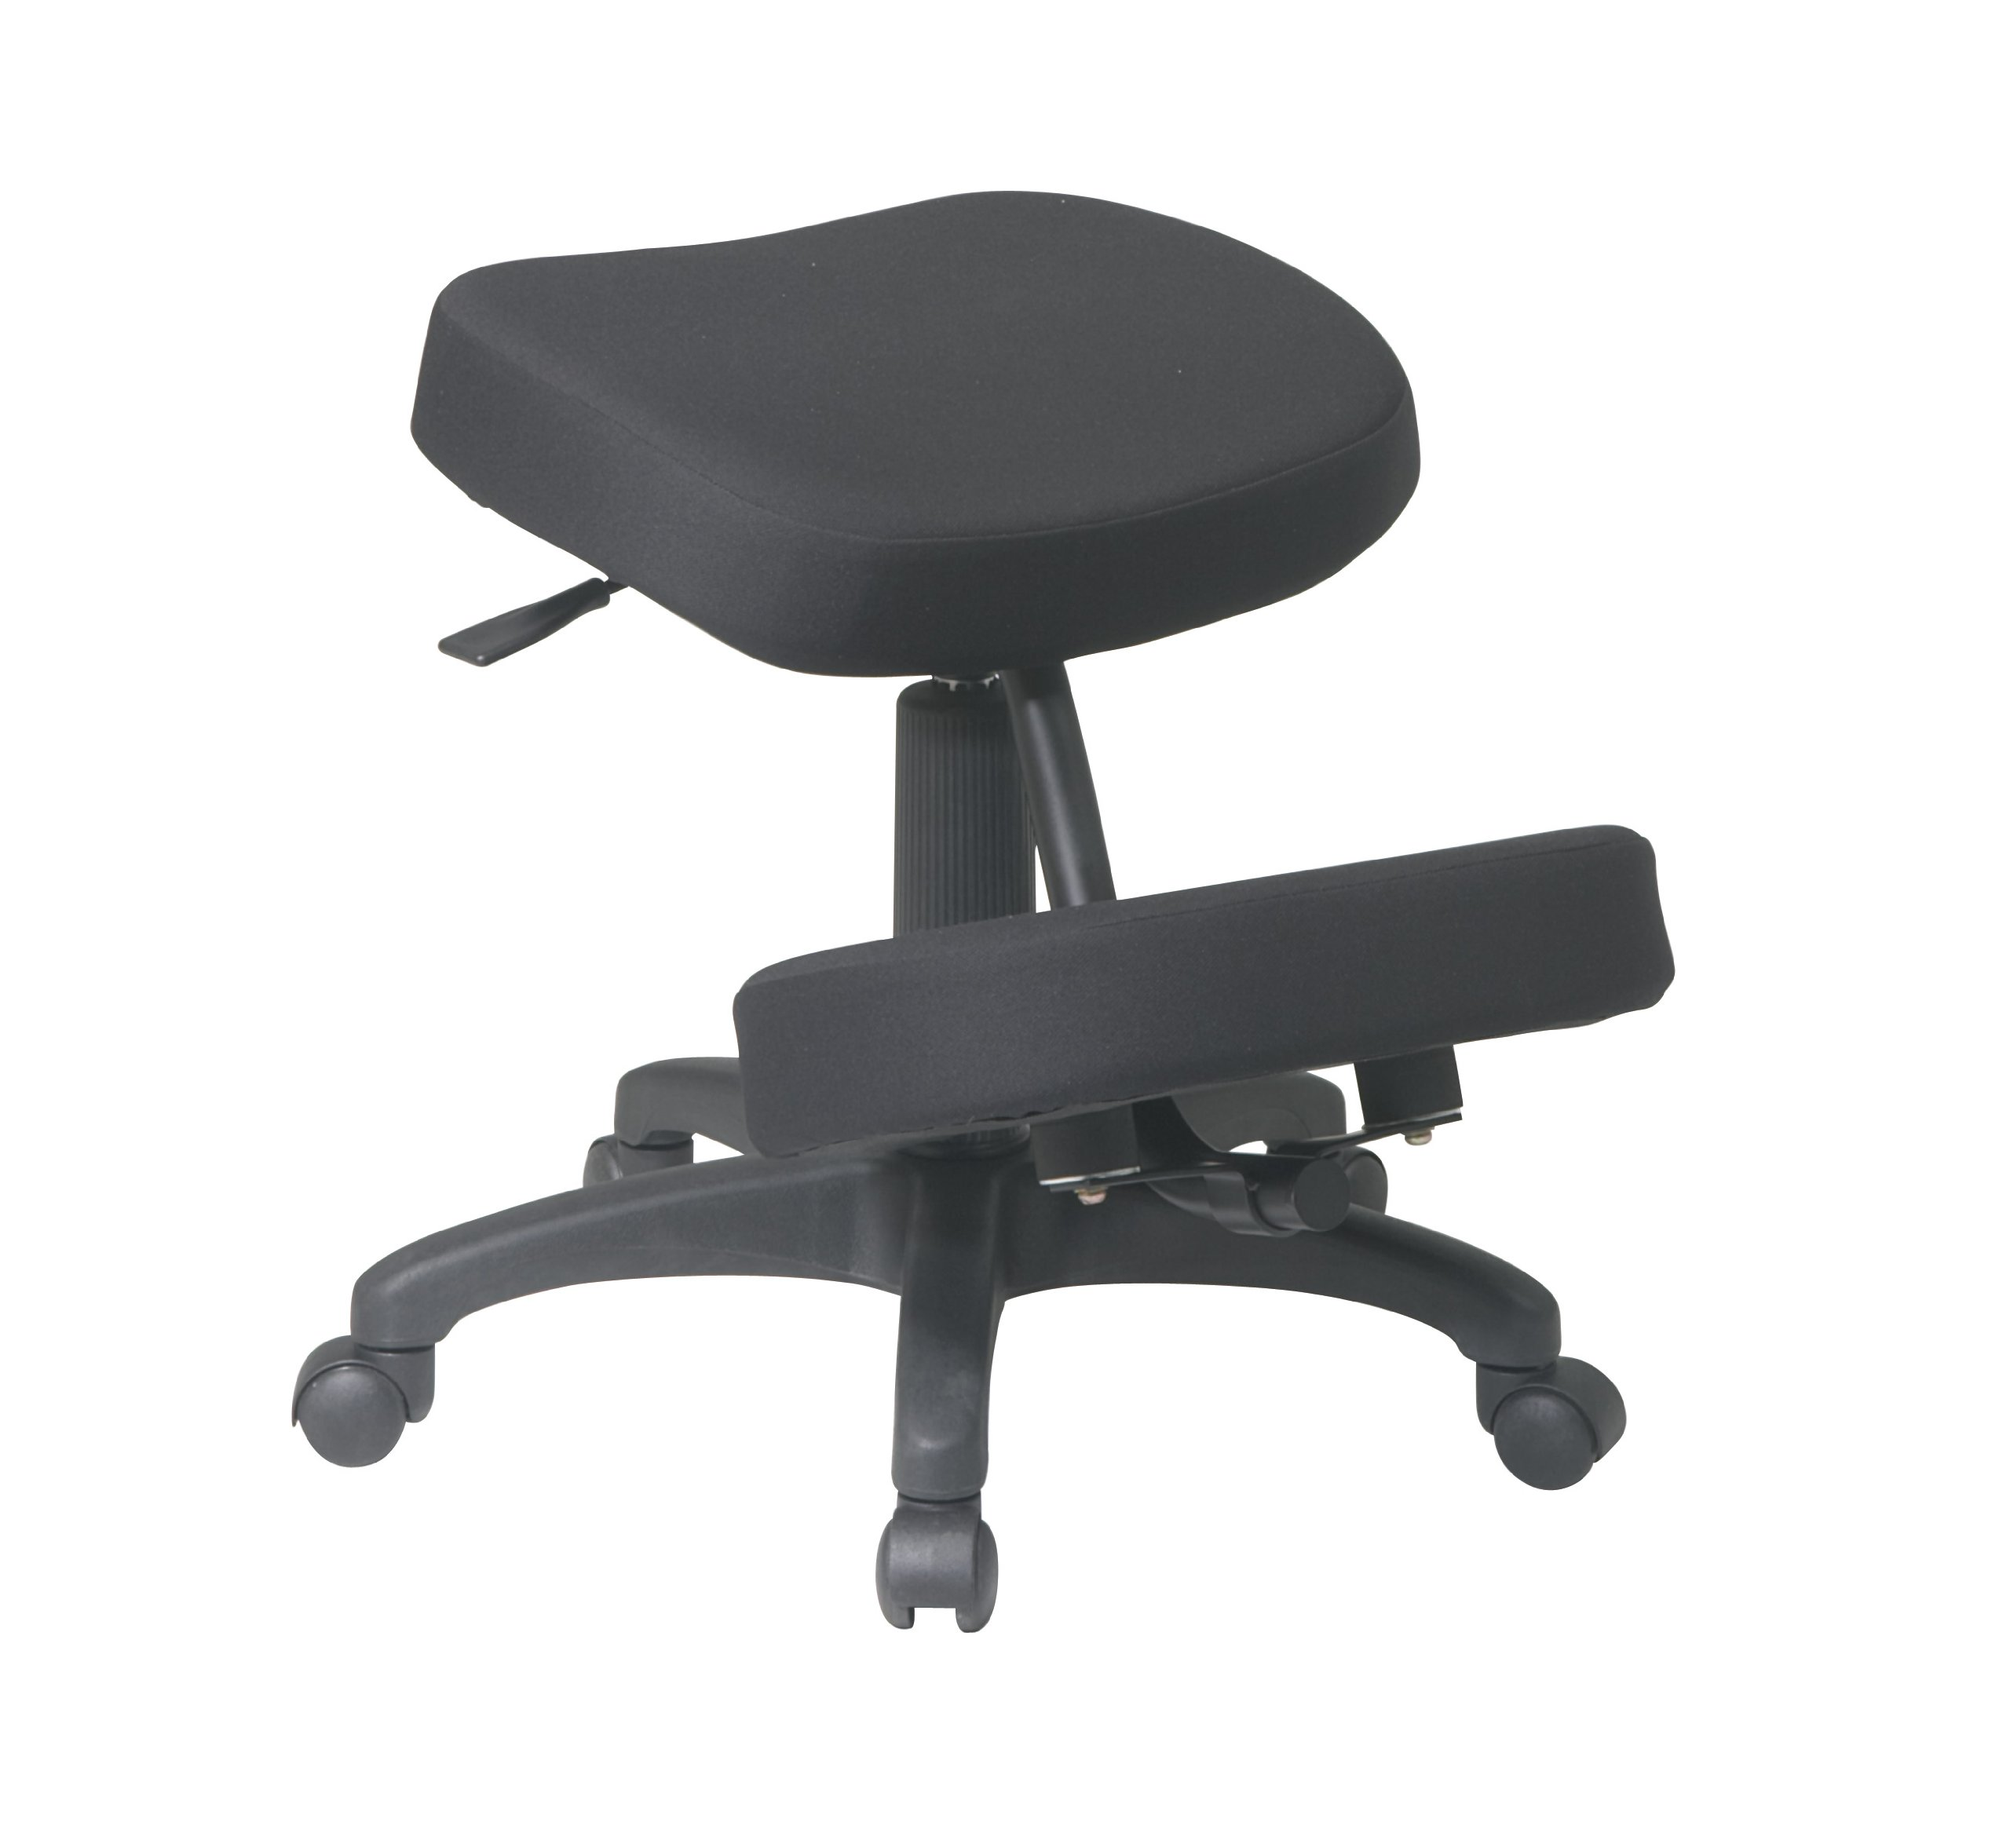 Office Star Ergonomically Designed Knee Chair with Casters, Memory Foam and 5 Star Base, Black by Office Star